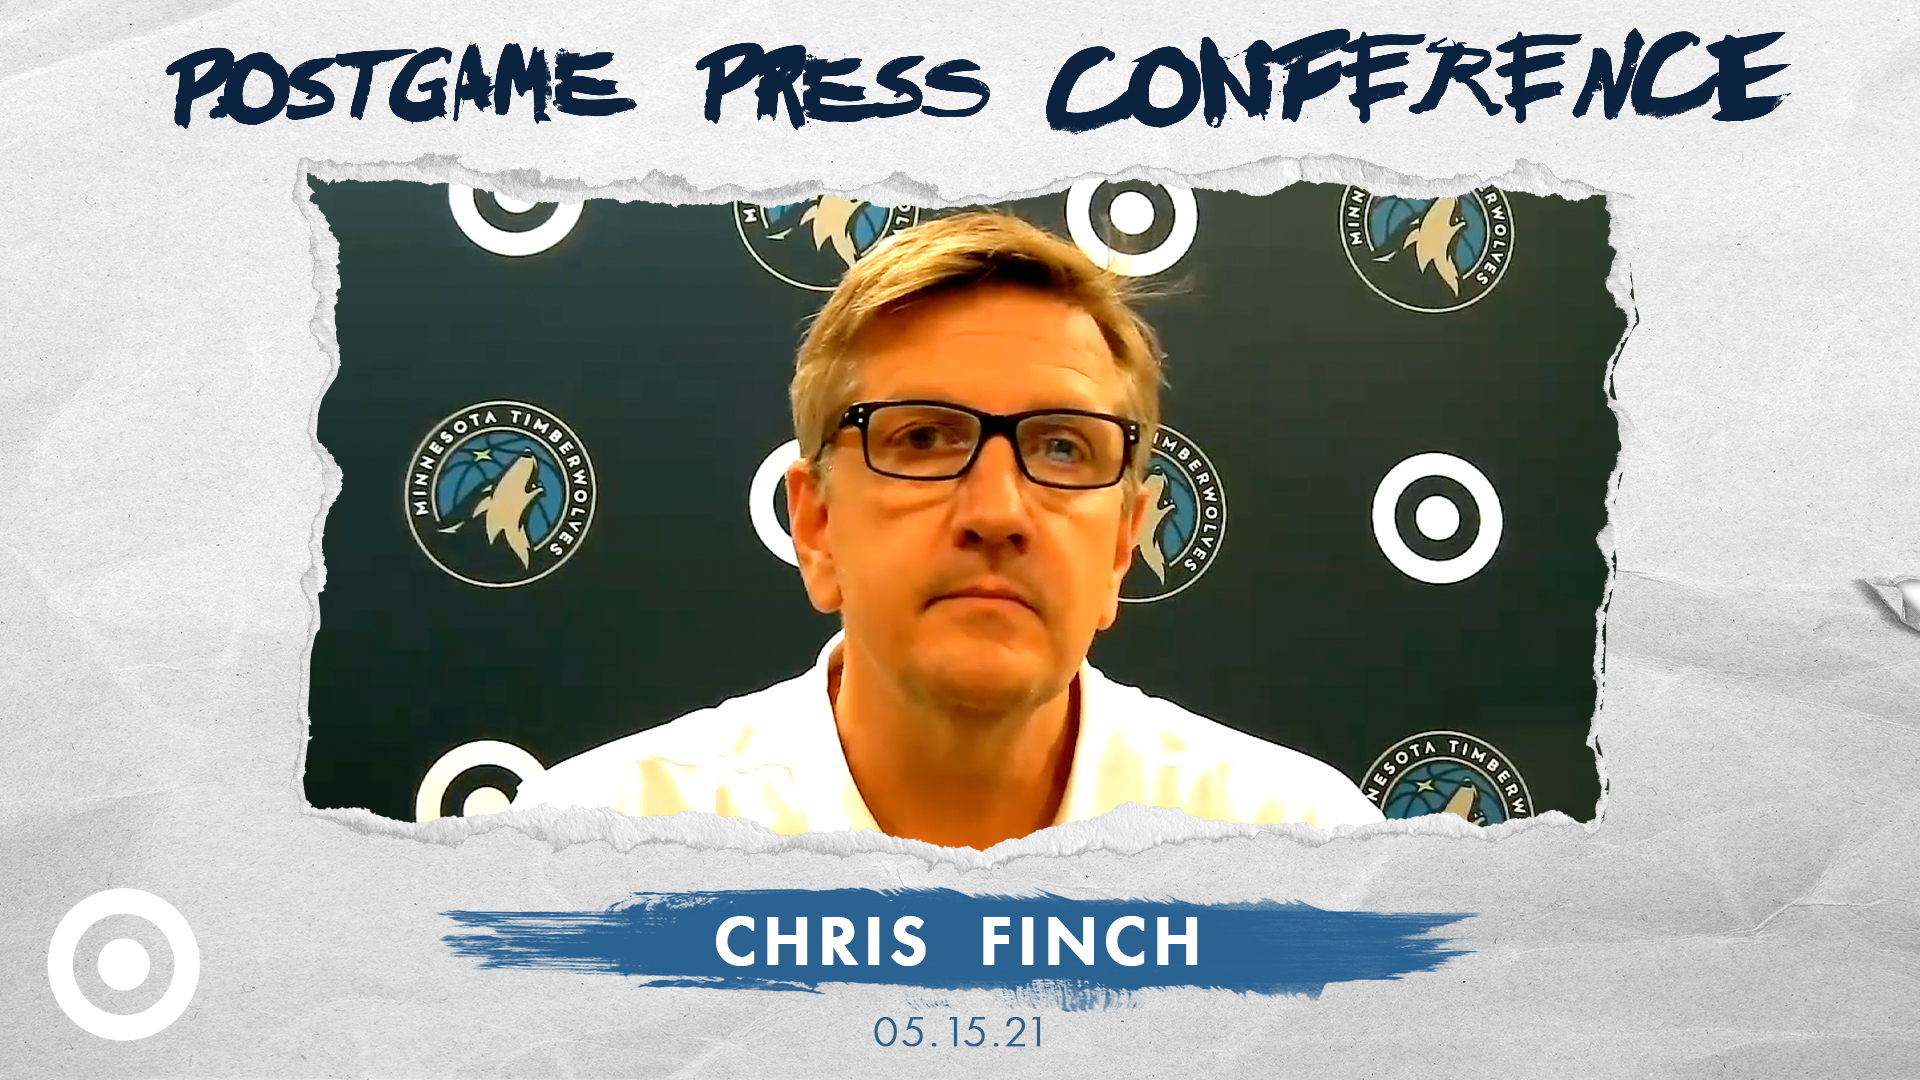 Chris Finch Postgame Press Conference - May 15, 2021